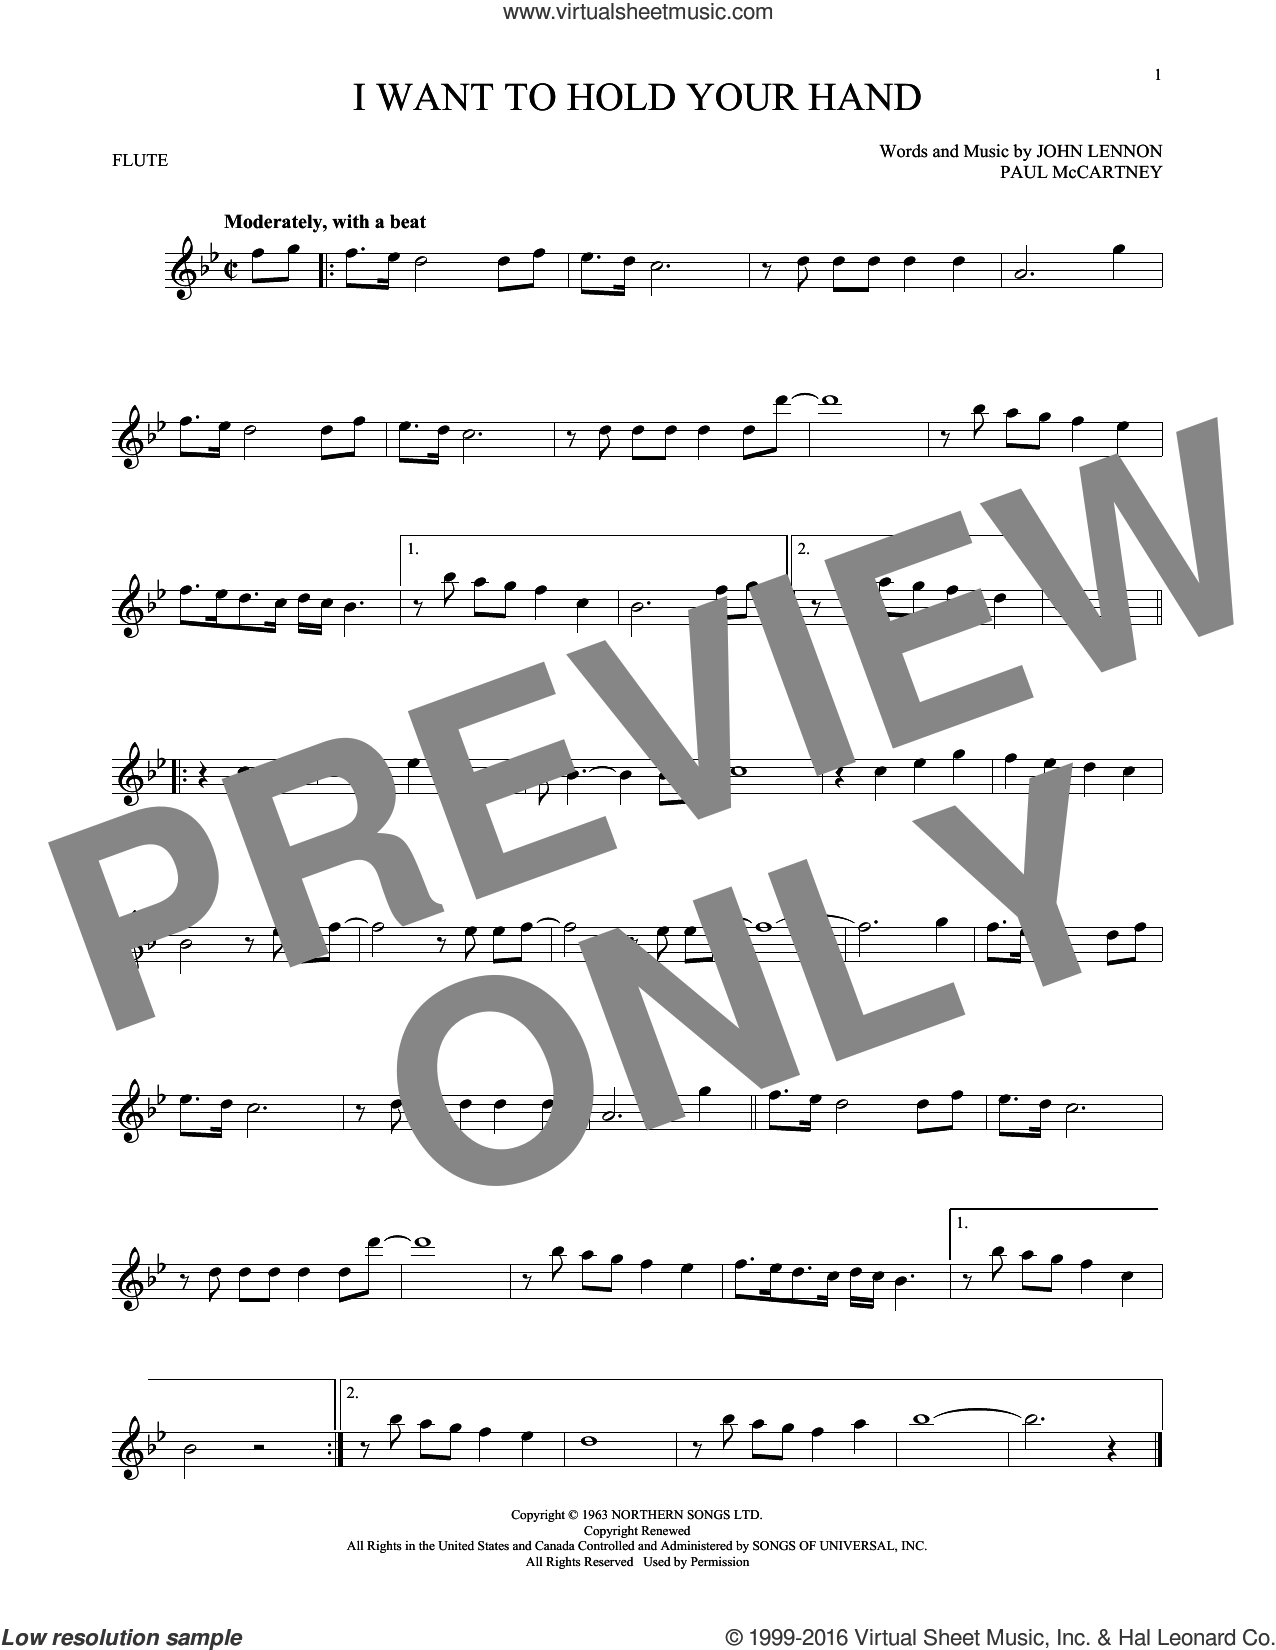 I Want To Hold Your Hand sheet music for flute solo by The Beatles, intermediate skill level